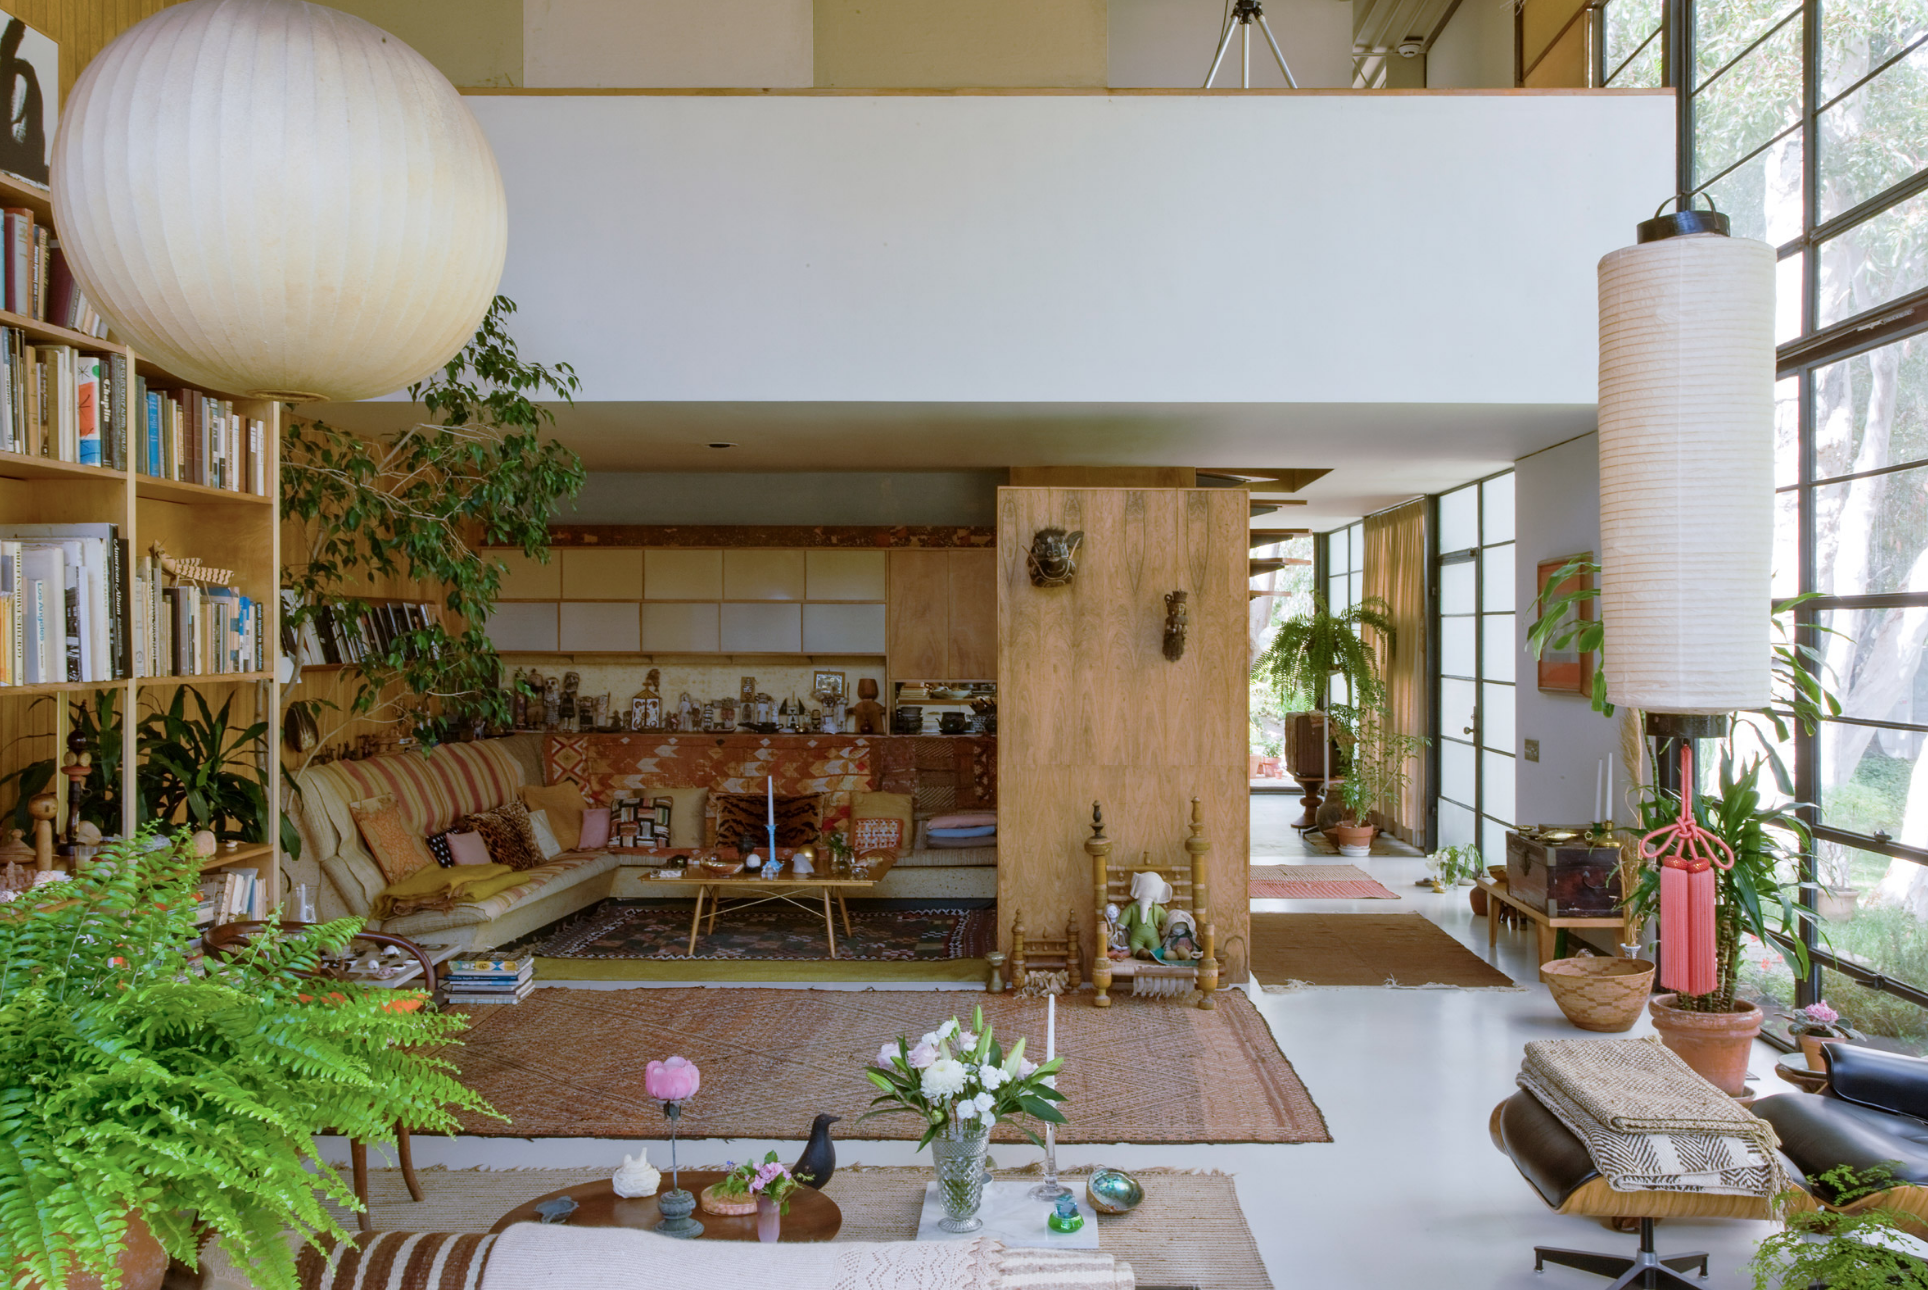 Eames House Living Space | Photo Credit: Leslie Schwartz and Joshua White